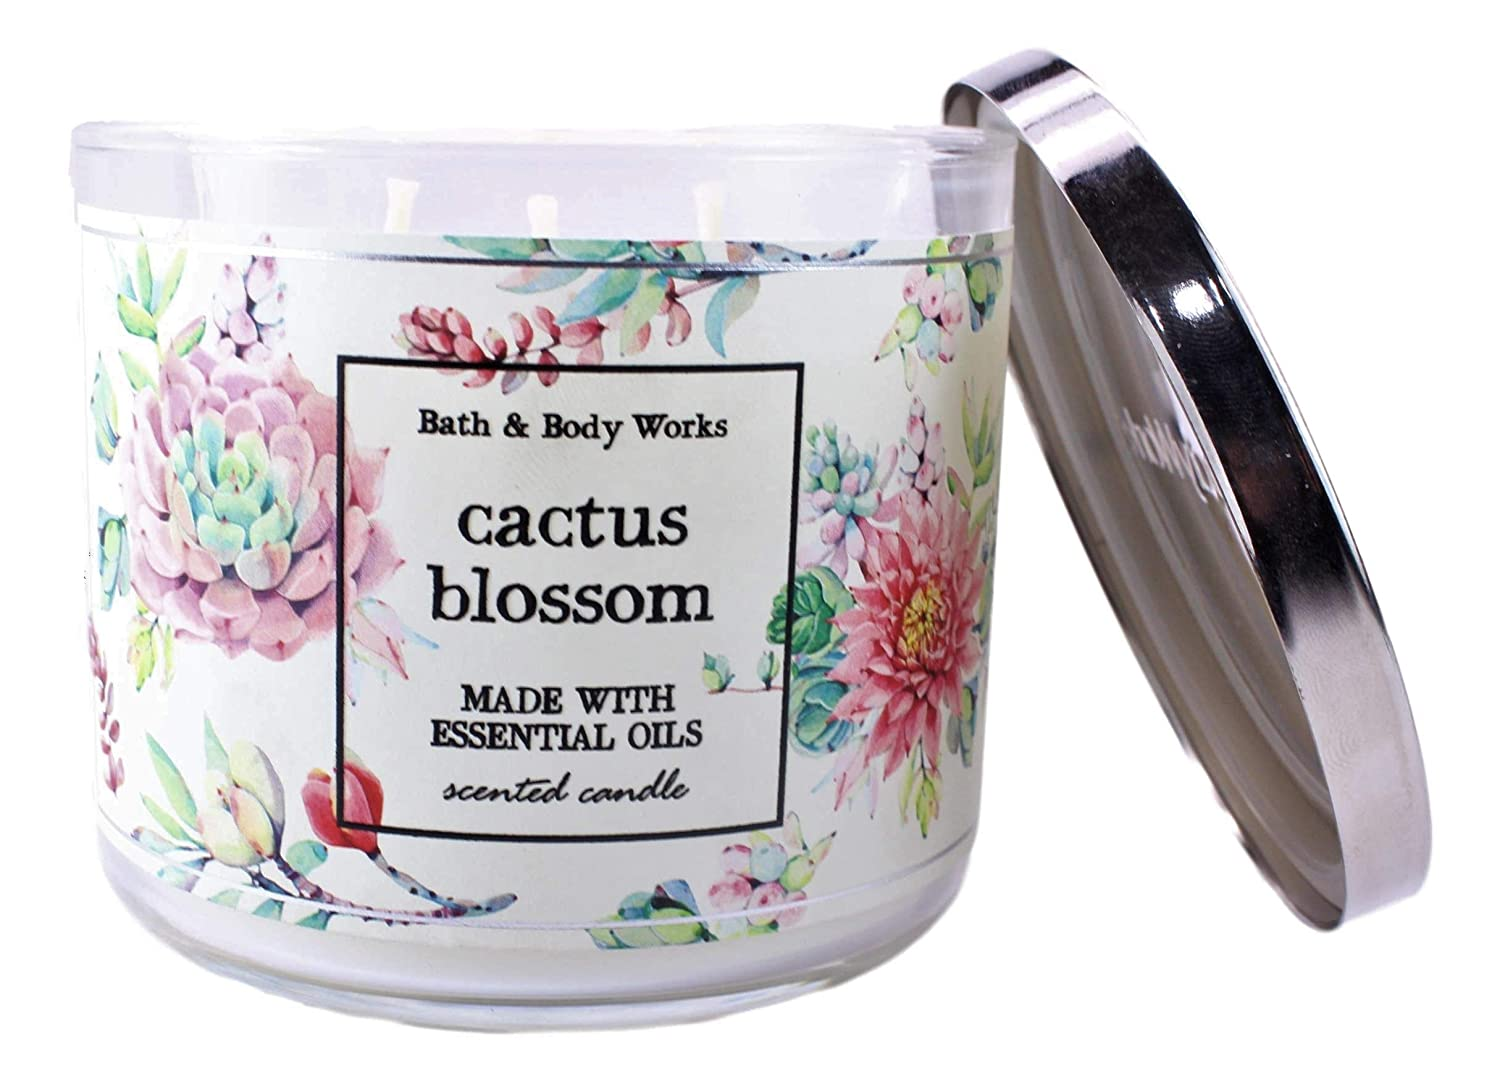 Bath /& Body Works Cactus Blossom 3 Wick Scented Candle 14.5 oz